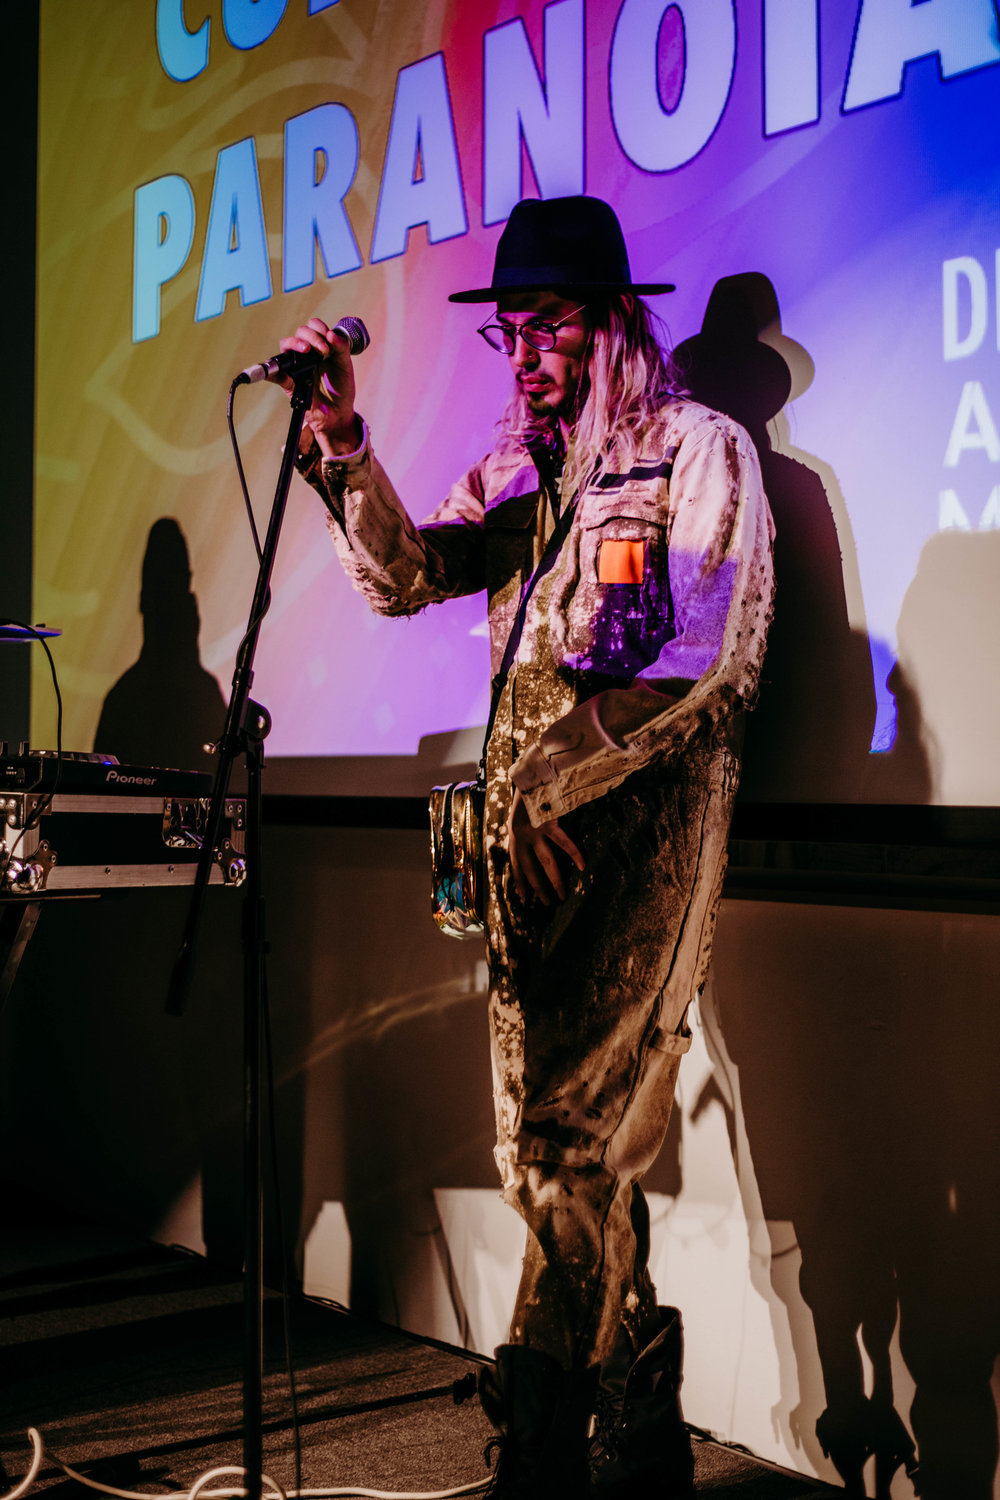 Cure For Paranoia performing during the DAM Awards.